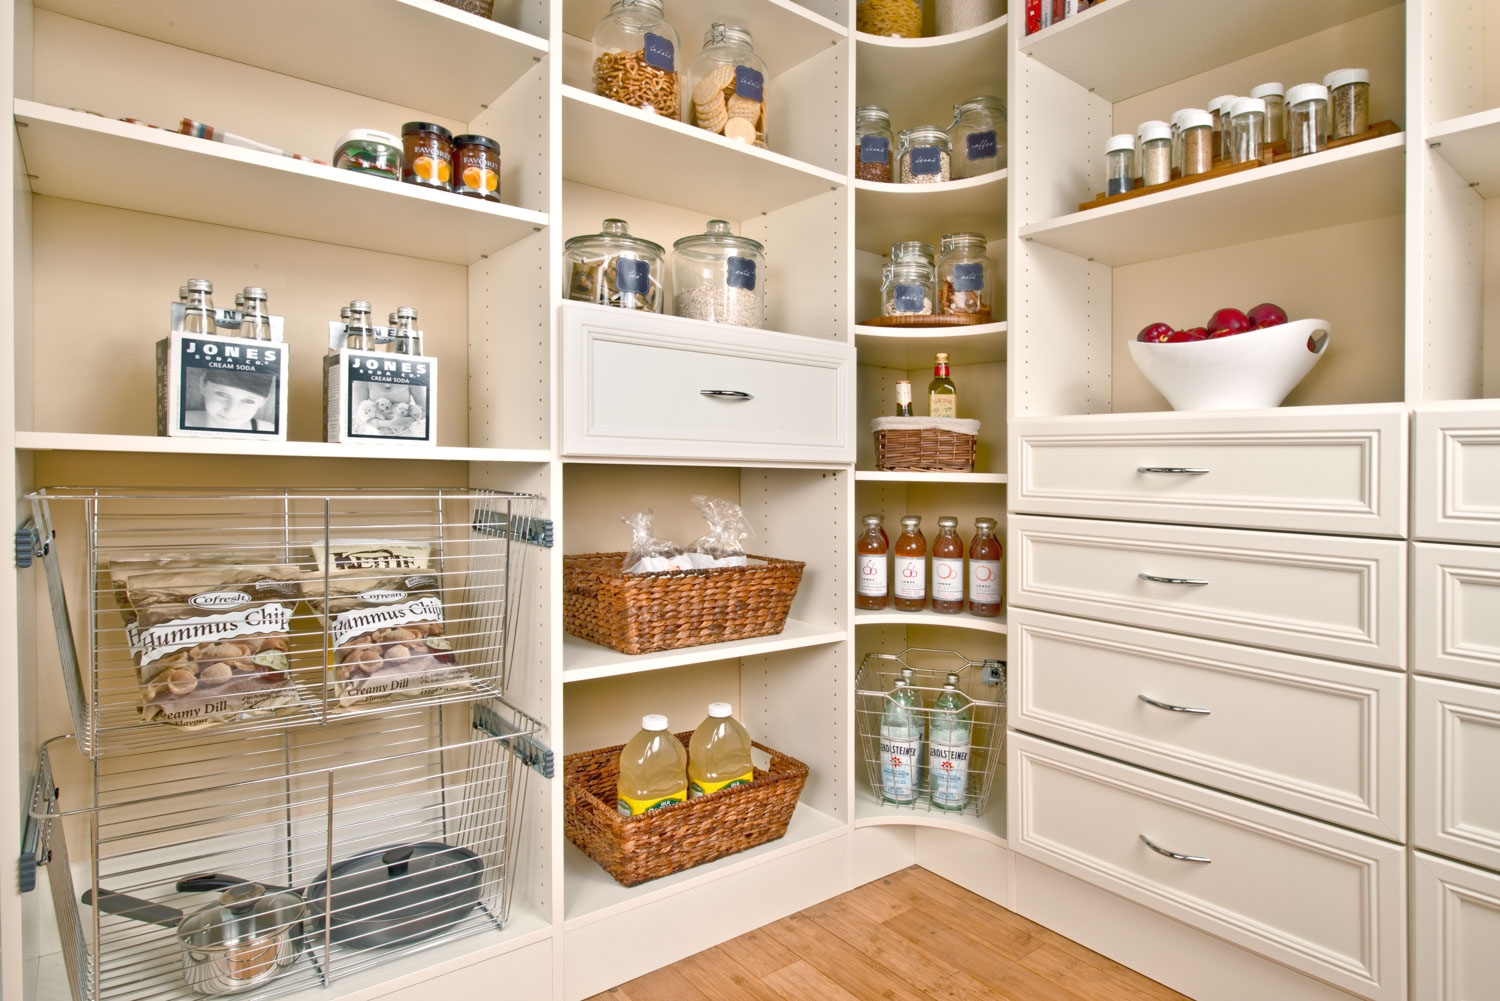 pinterest organizer and pantry awesome cleanmama kitchen tricks closet for on images organization small organize ideas best storage tips